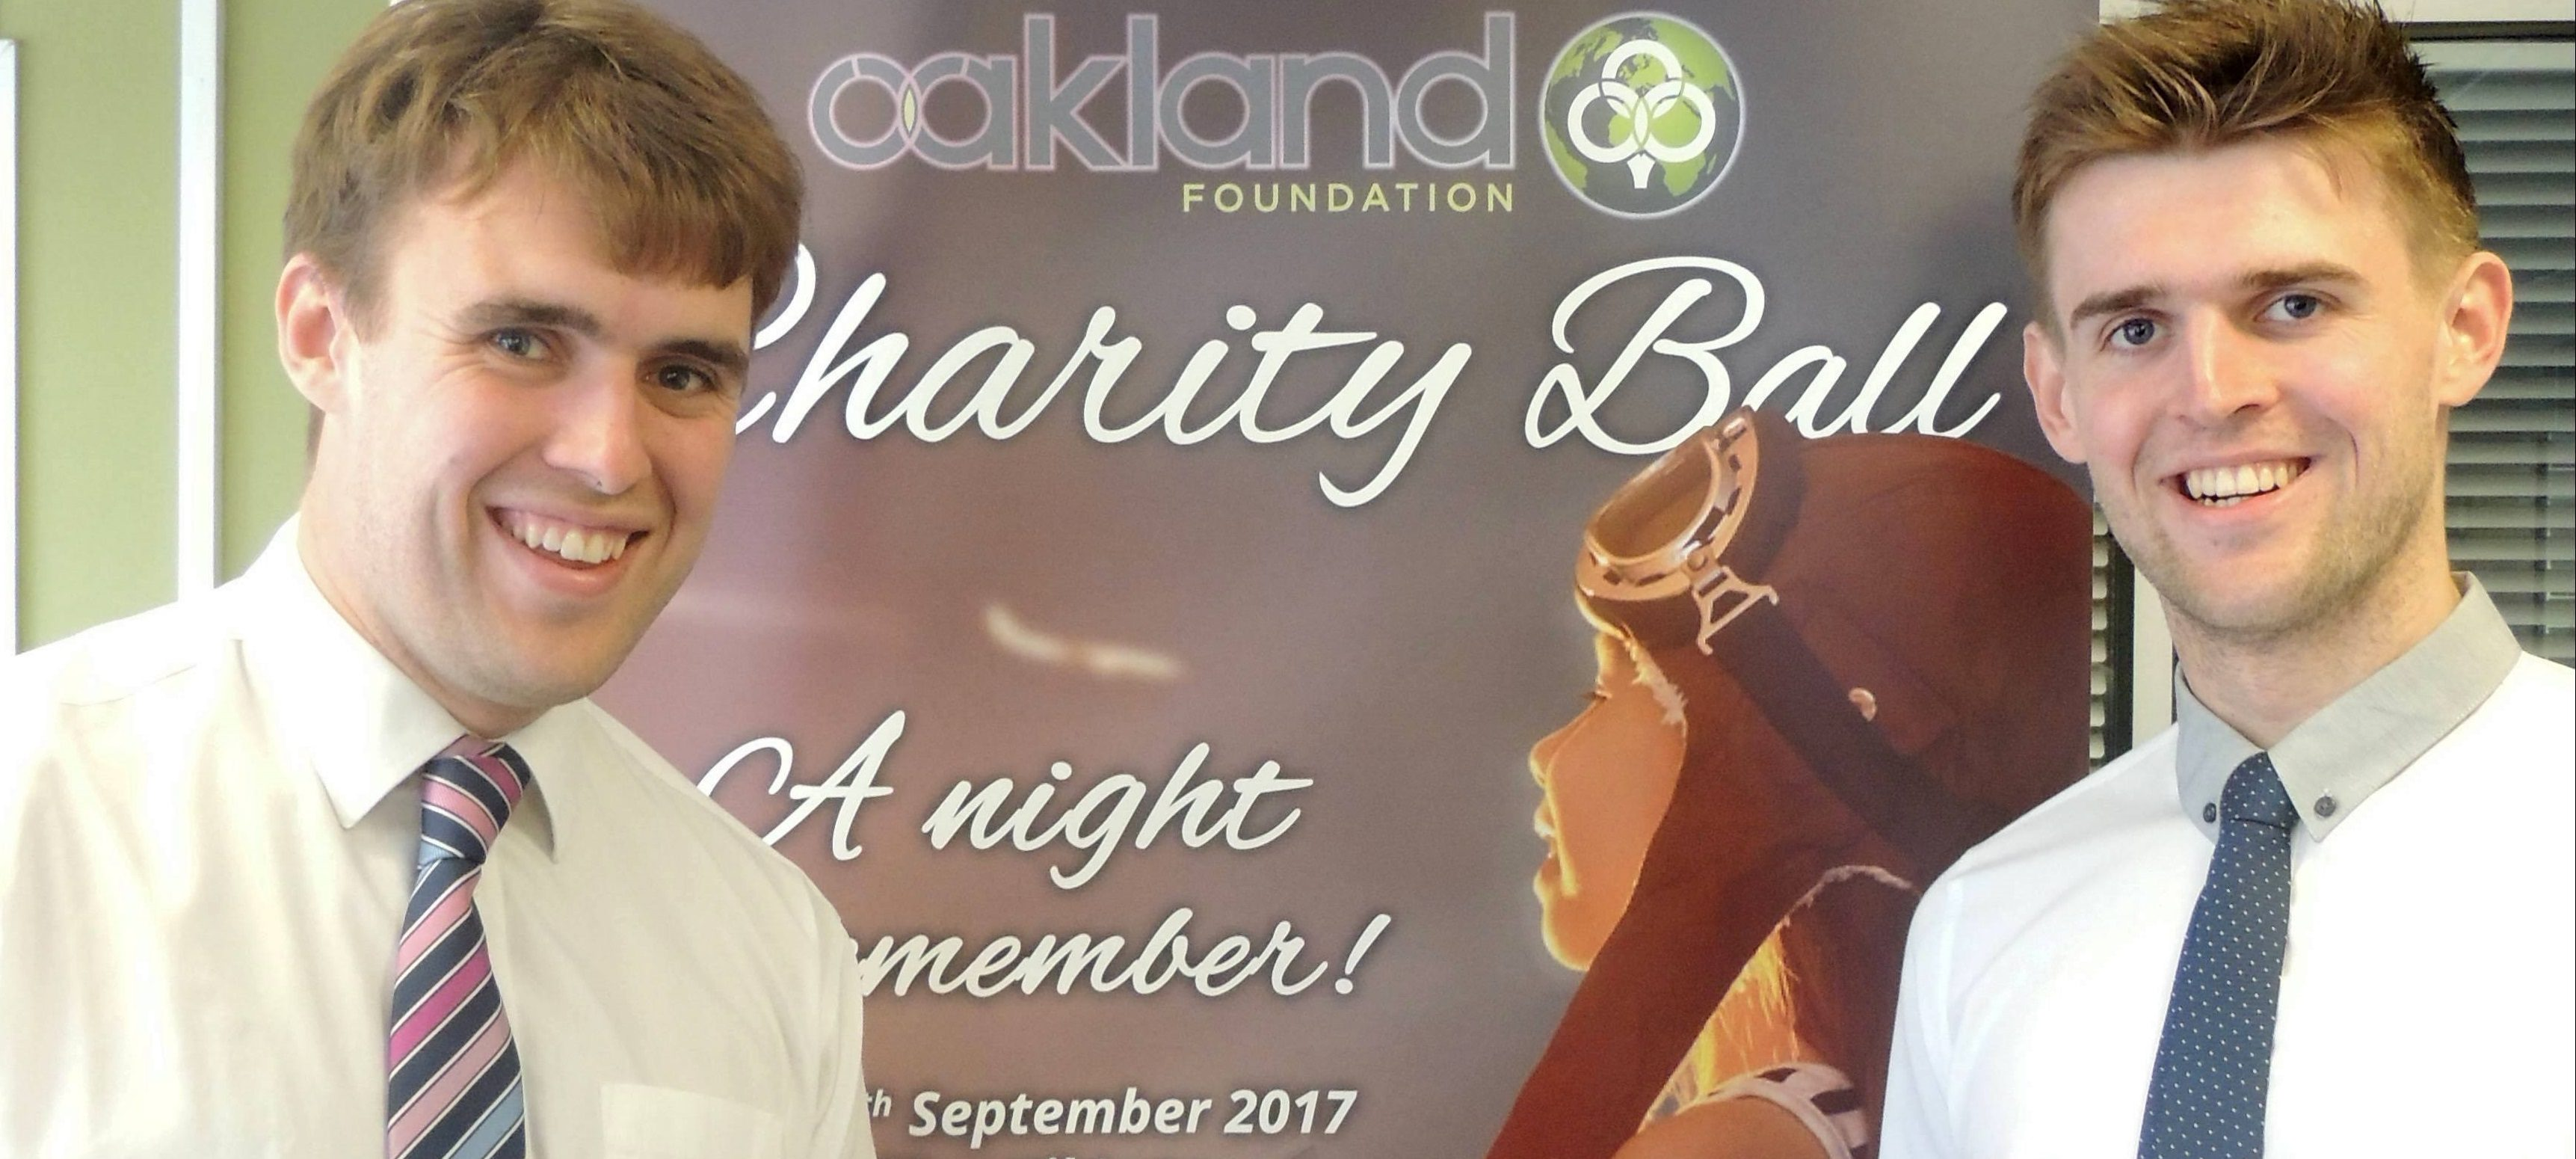 Children's Charity Ball Set to Boost Worthy Causes